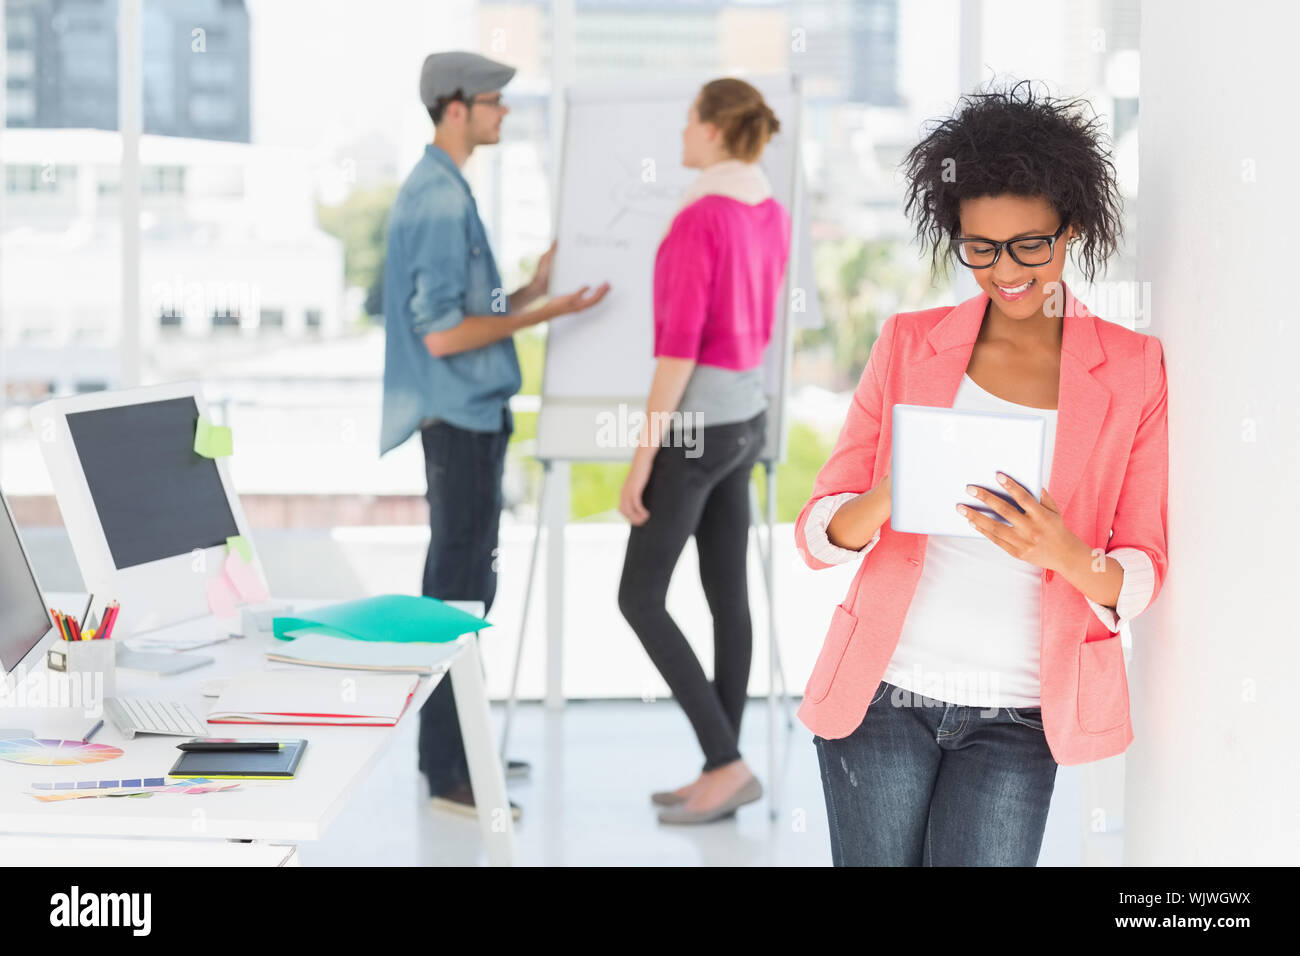 Casual female artist using digital tablet with colleagues in the background at a bright office Stock Photo